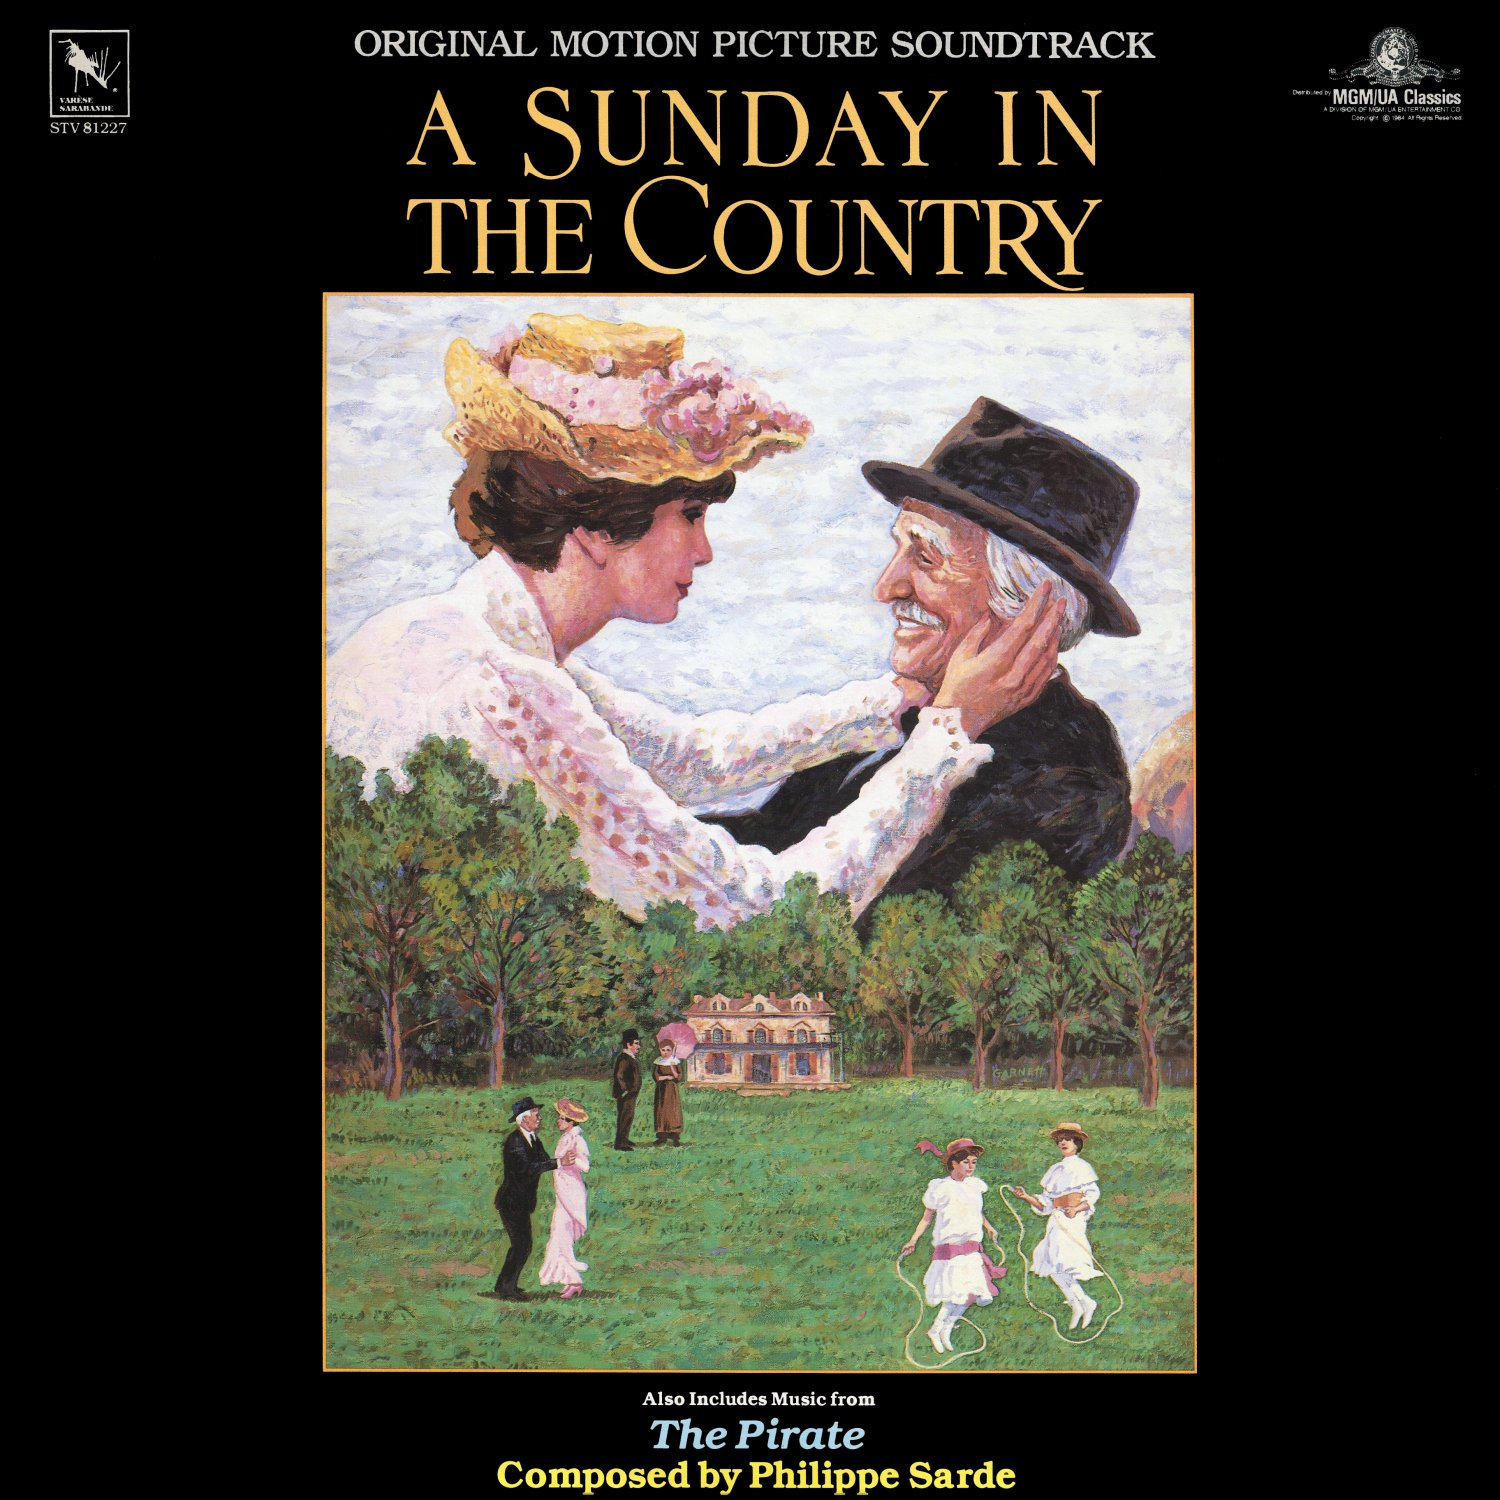 A Sunday In The Country / The Pirate - Original Soundtrack, Philippe Sarde OST LP/CD